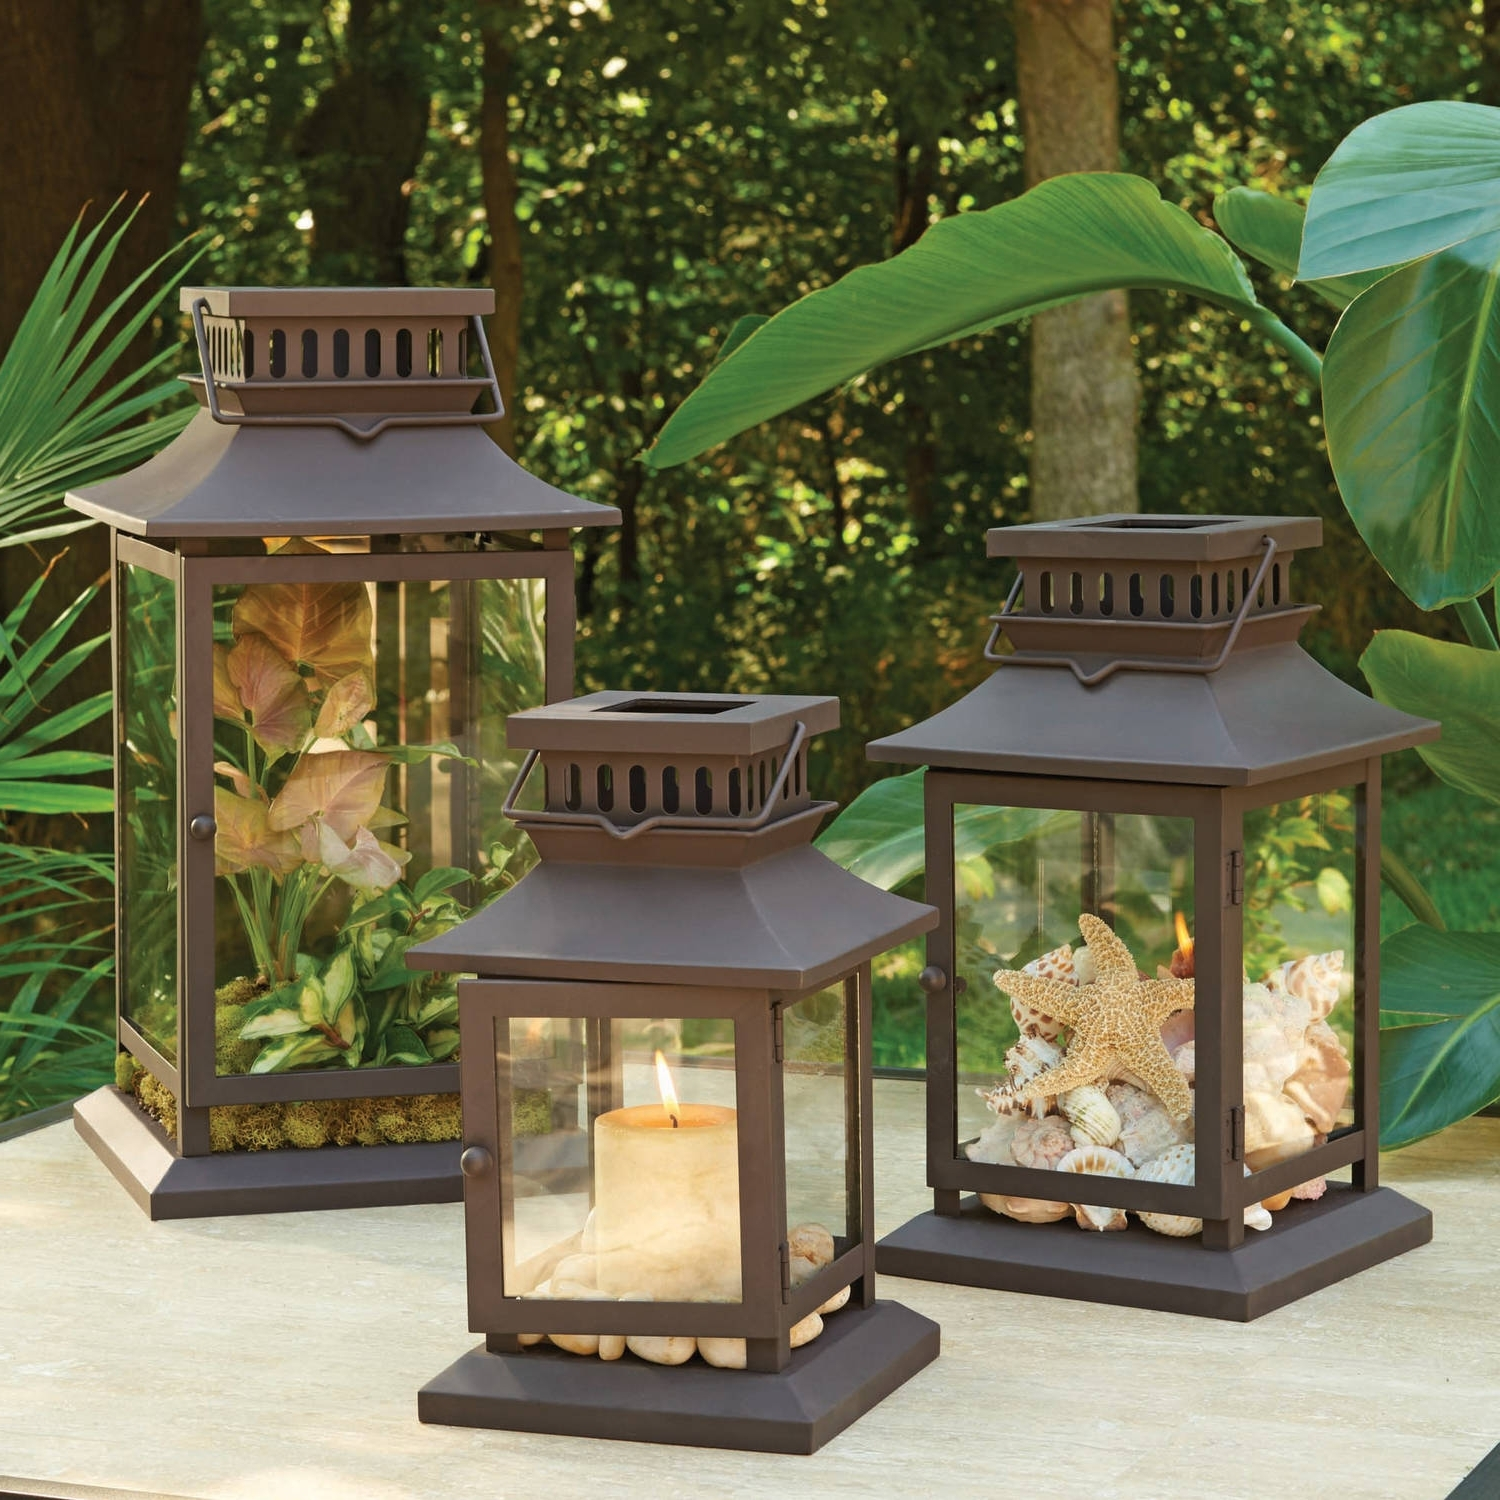 Outdoor Vinyl Lanterns Pertaining To Best And Newest Better Homes And Gardens Square Metal Outdoor Lantern – Walmart (View 17 of 20)